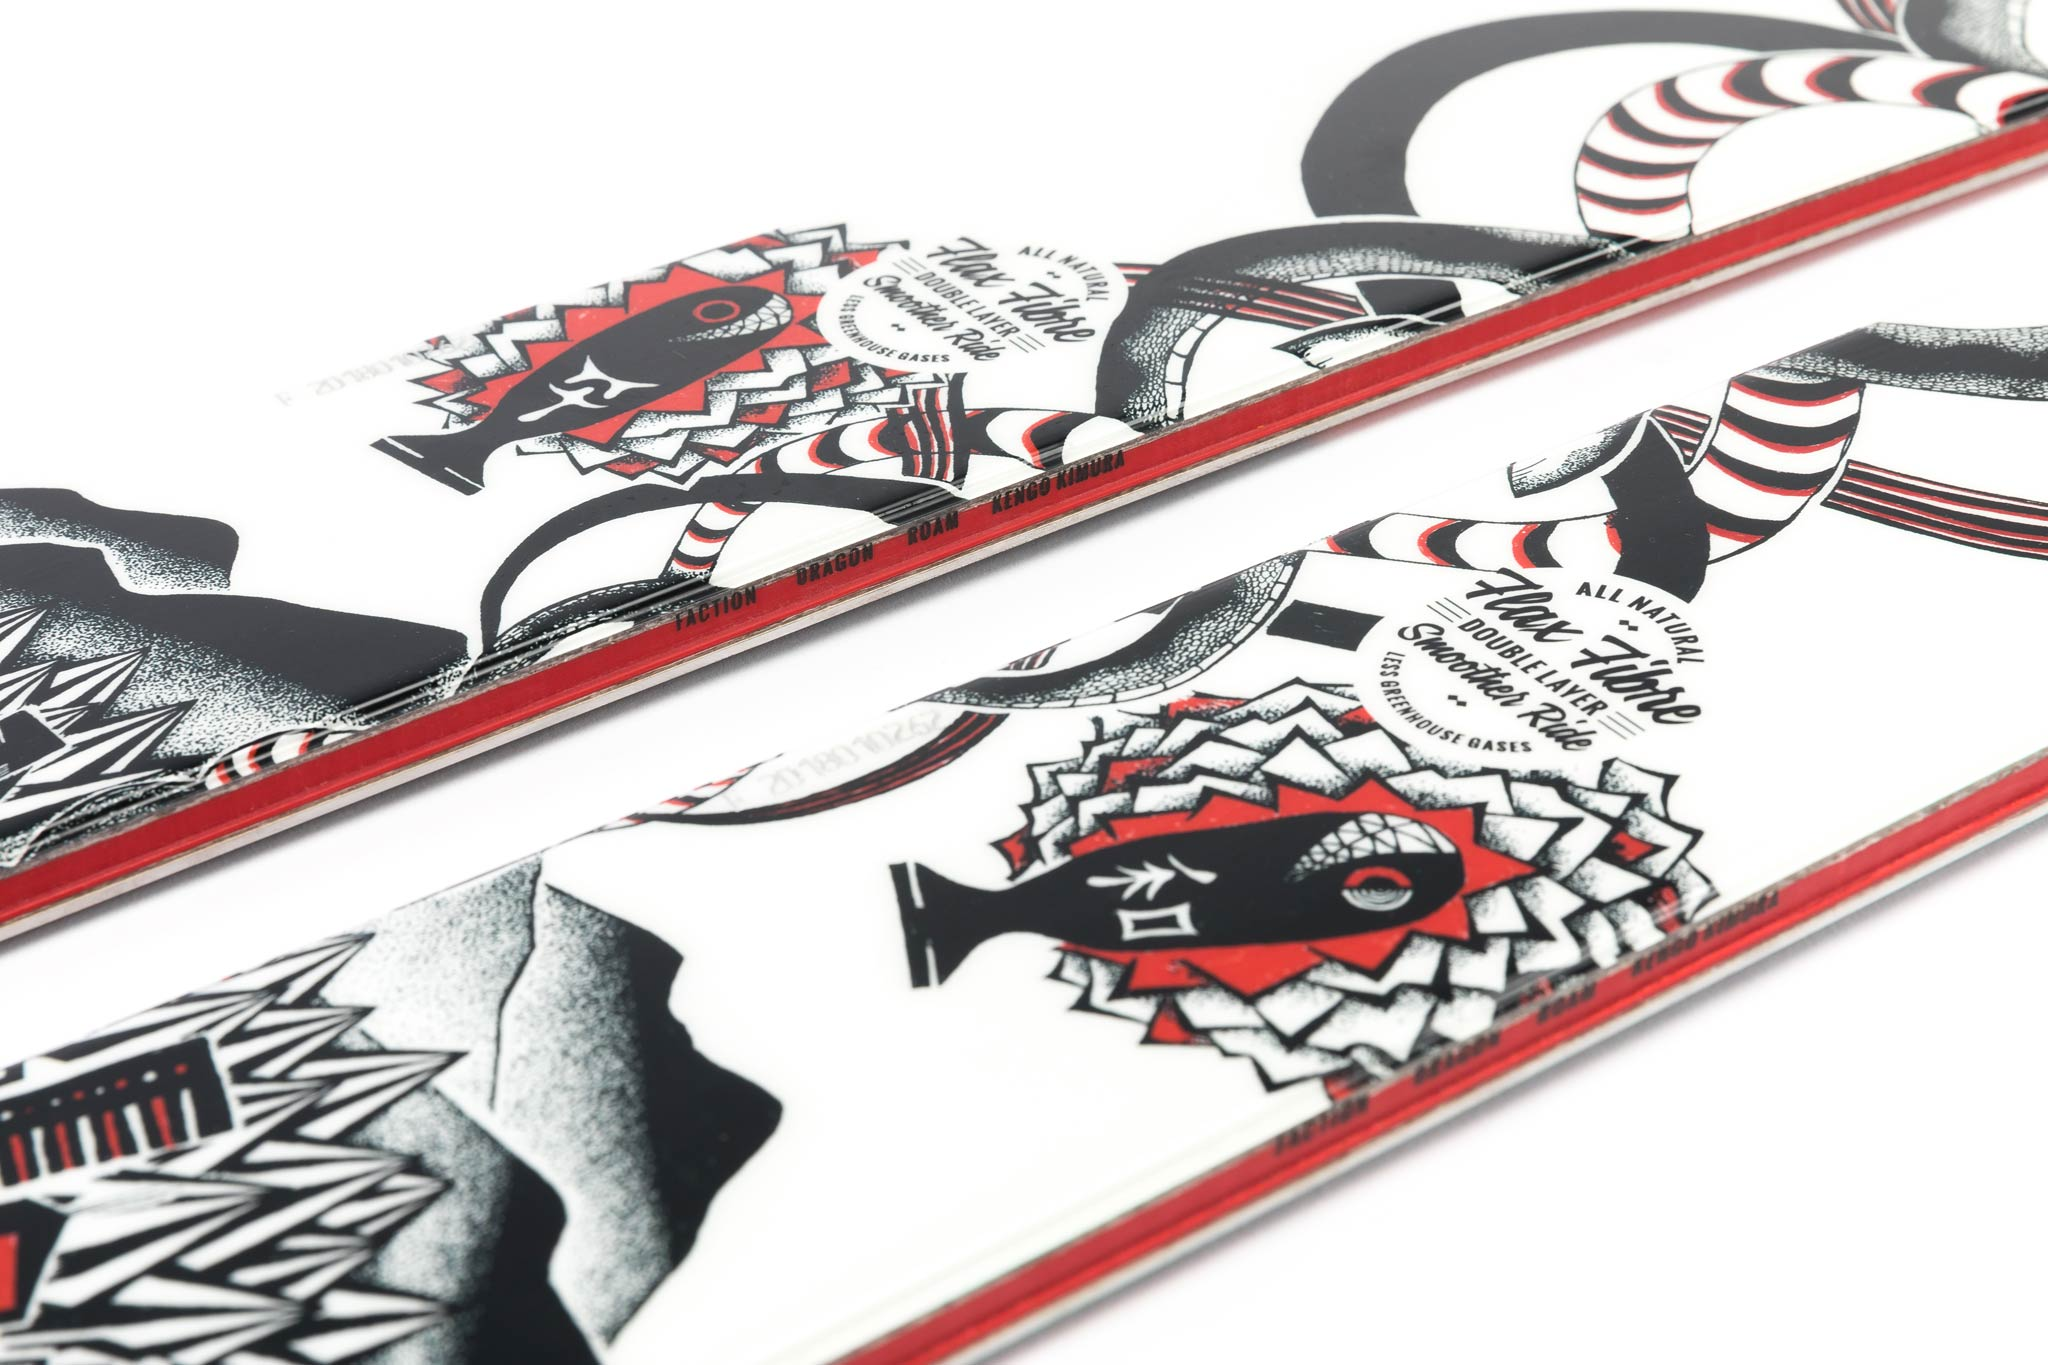 Faction Skis Prodigy 3.0 x Kengo